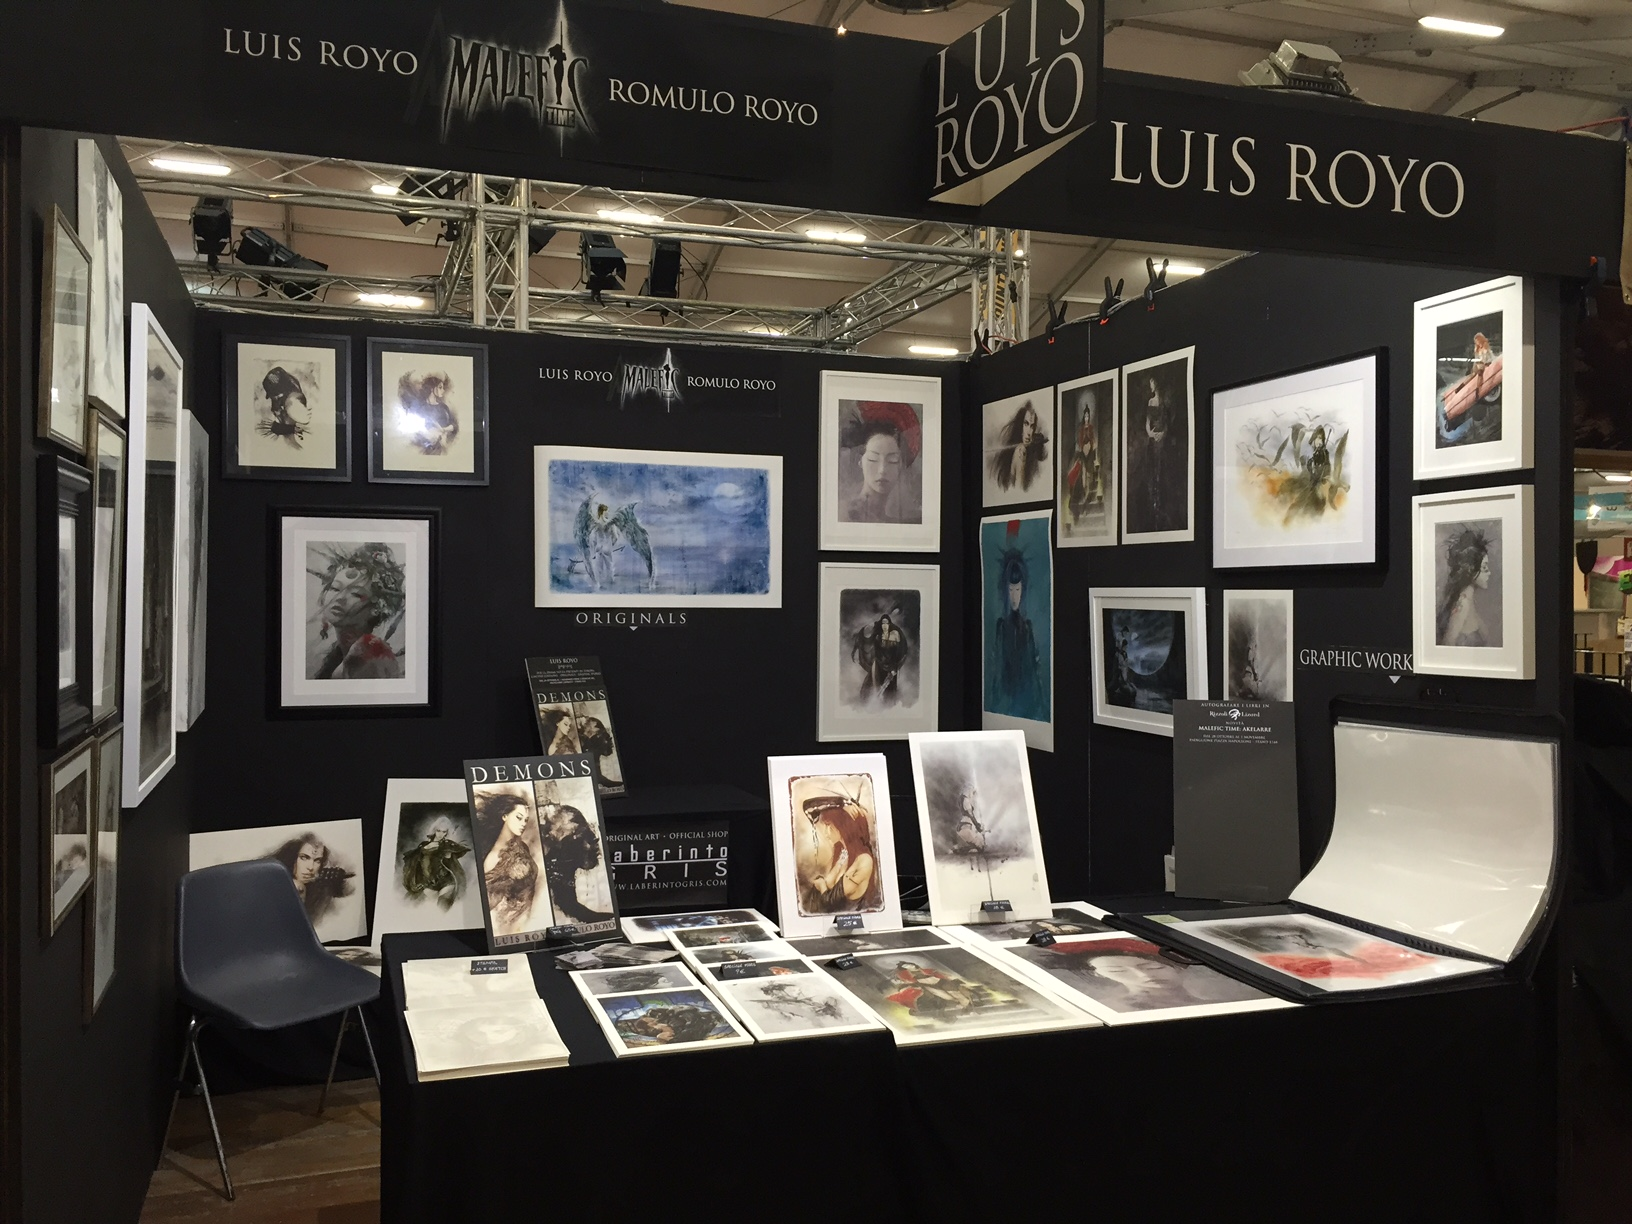 Stand Romulo Royo, Luis Royo,Laberinto Gris - Lucca Games and Comics 2016